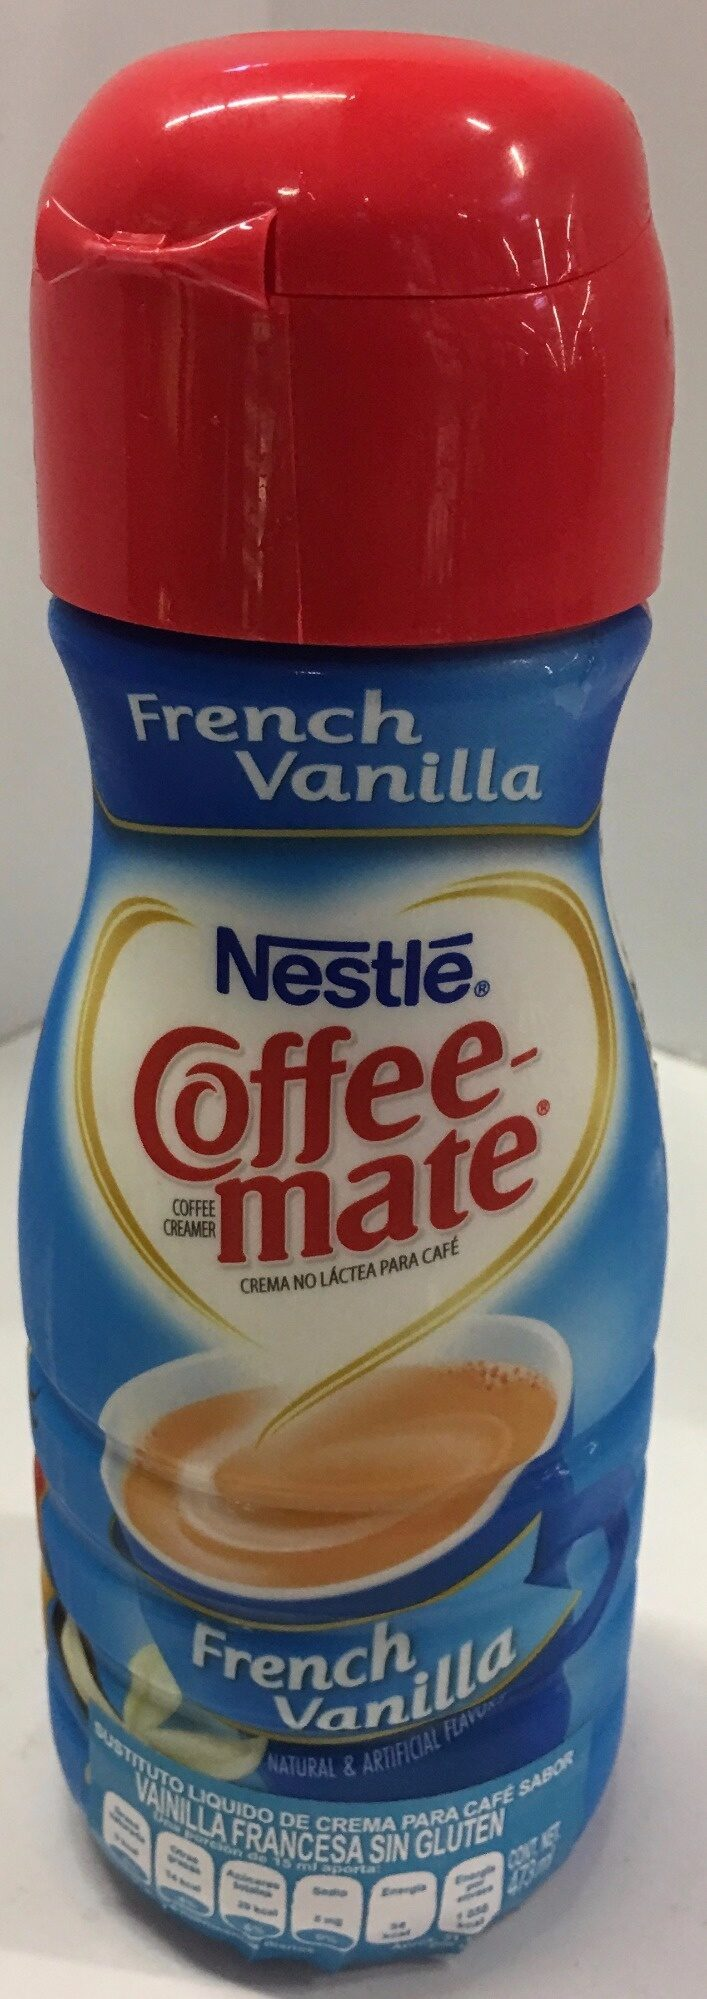 Coffee Mate French Vainilla - Product - es